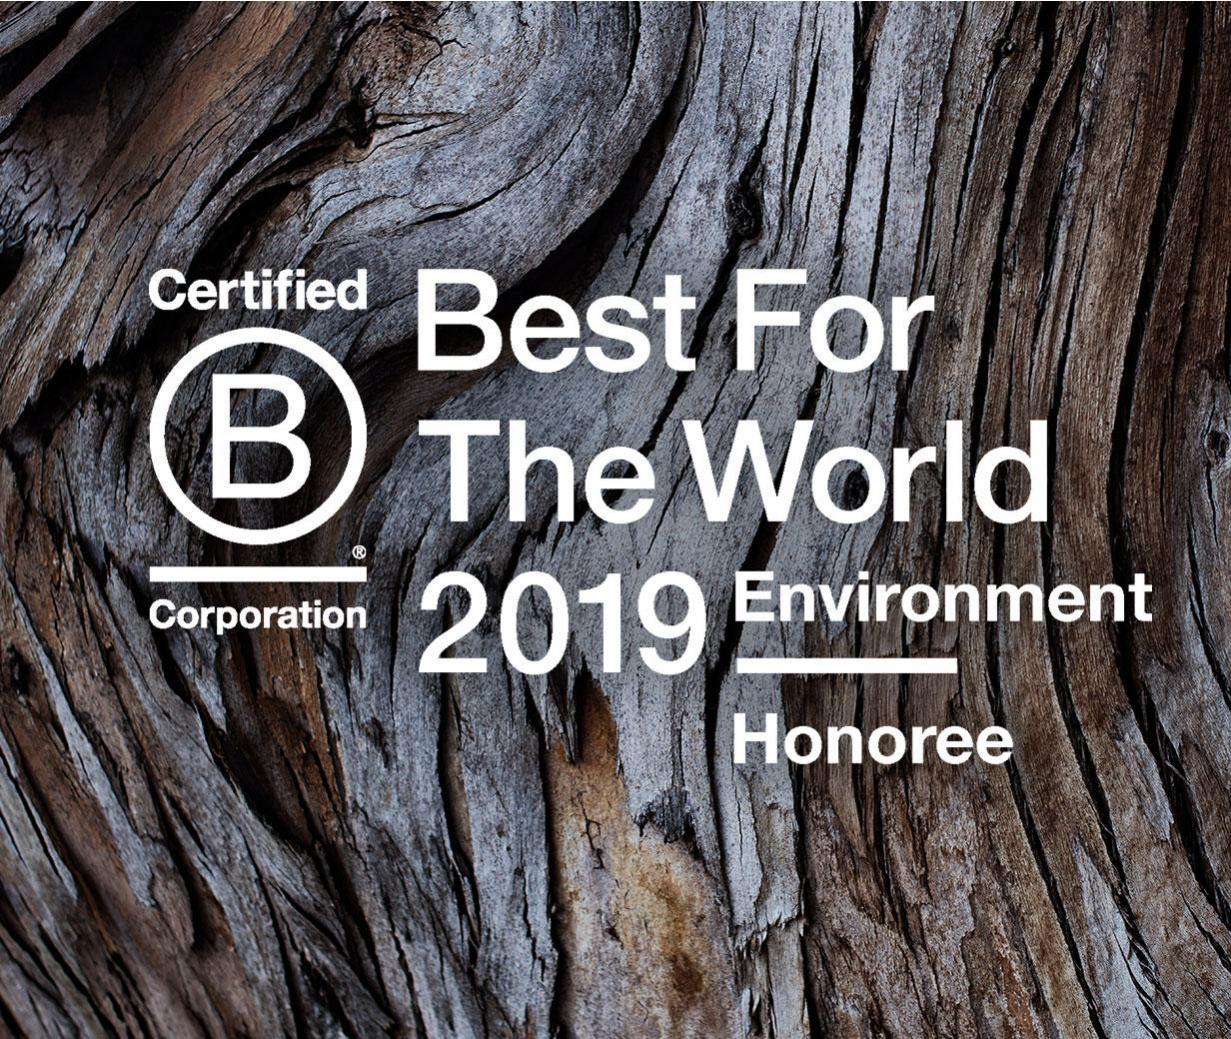 What does it mean to be a B Corp?